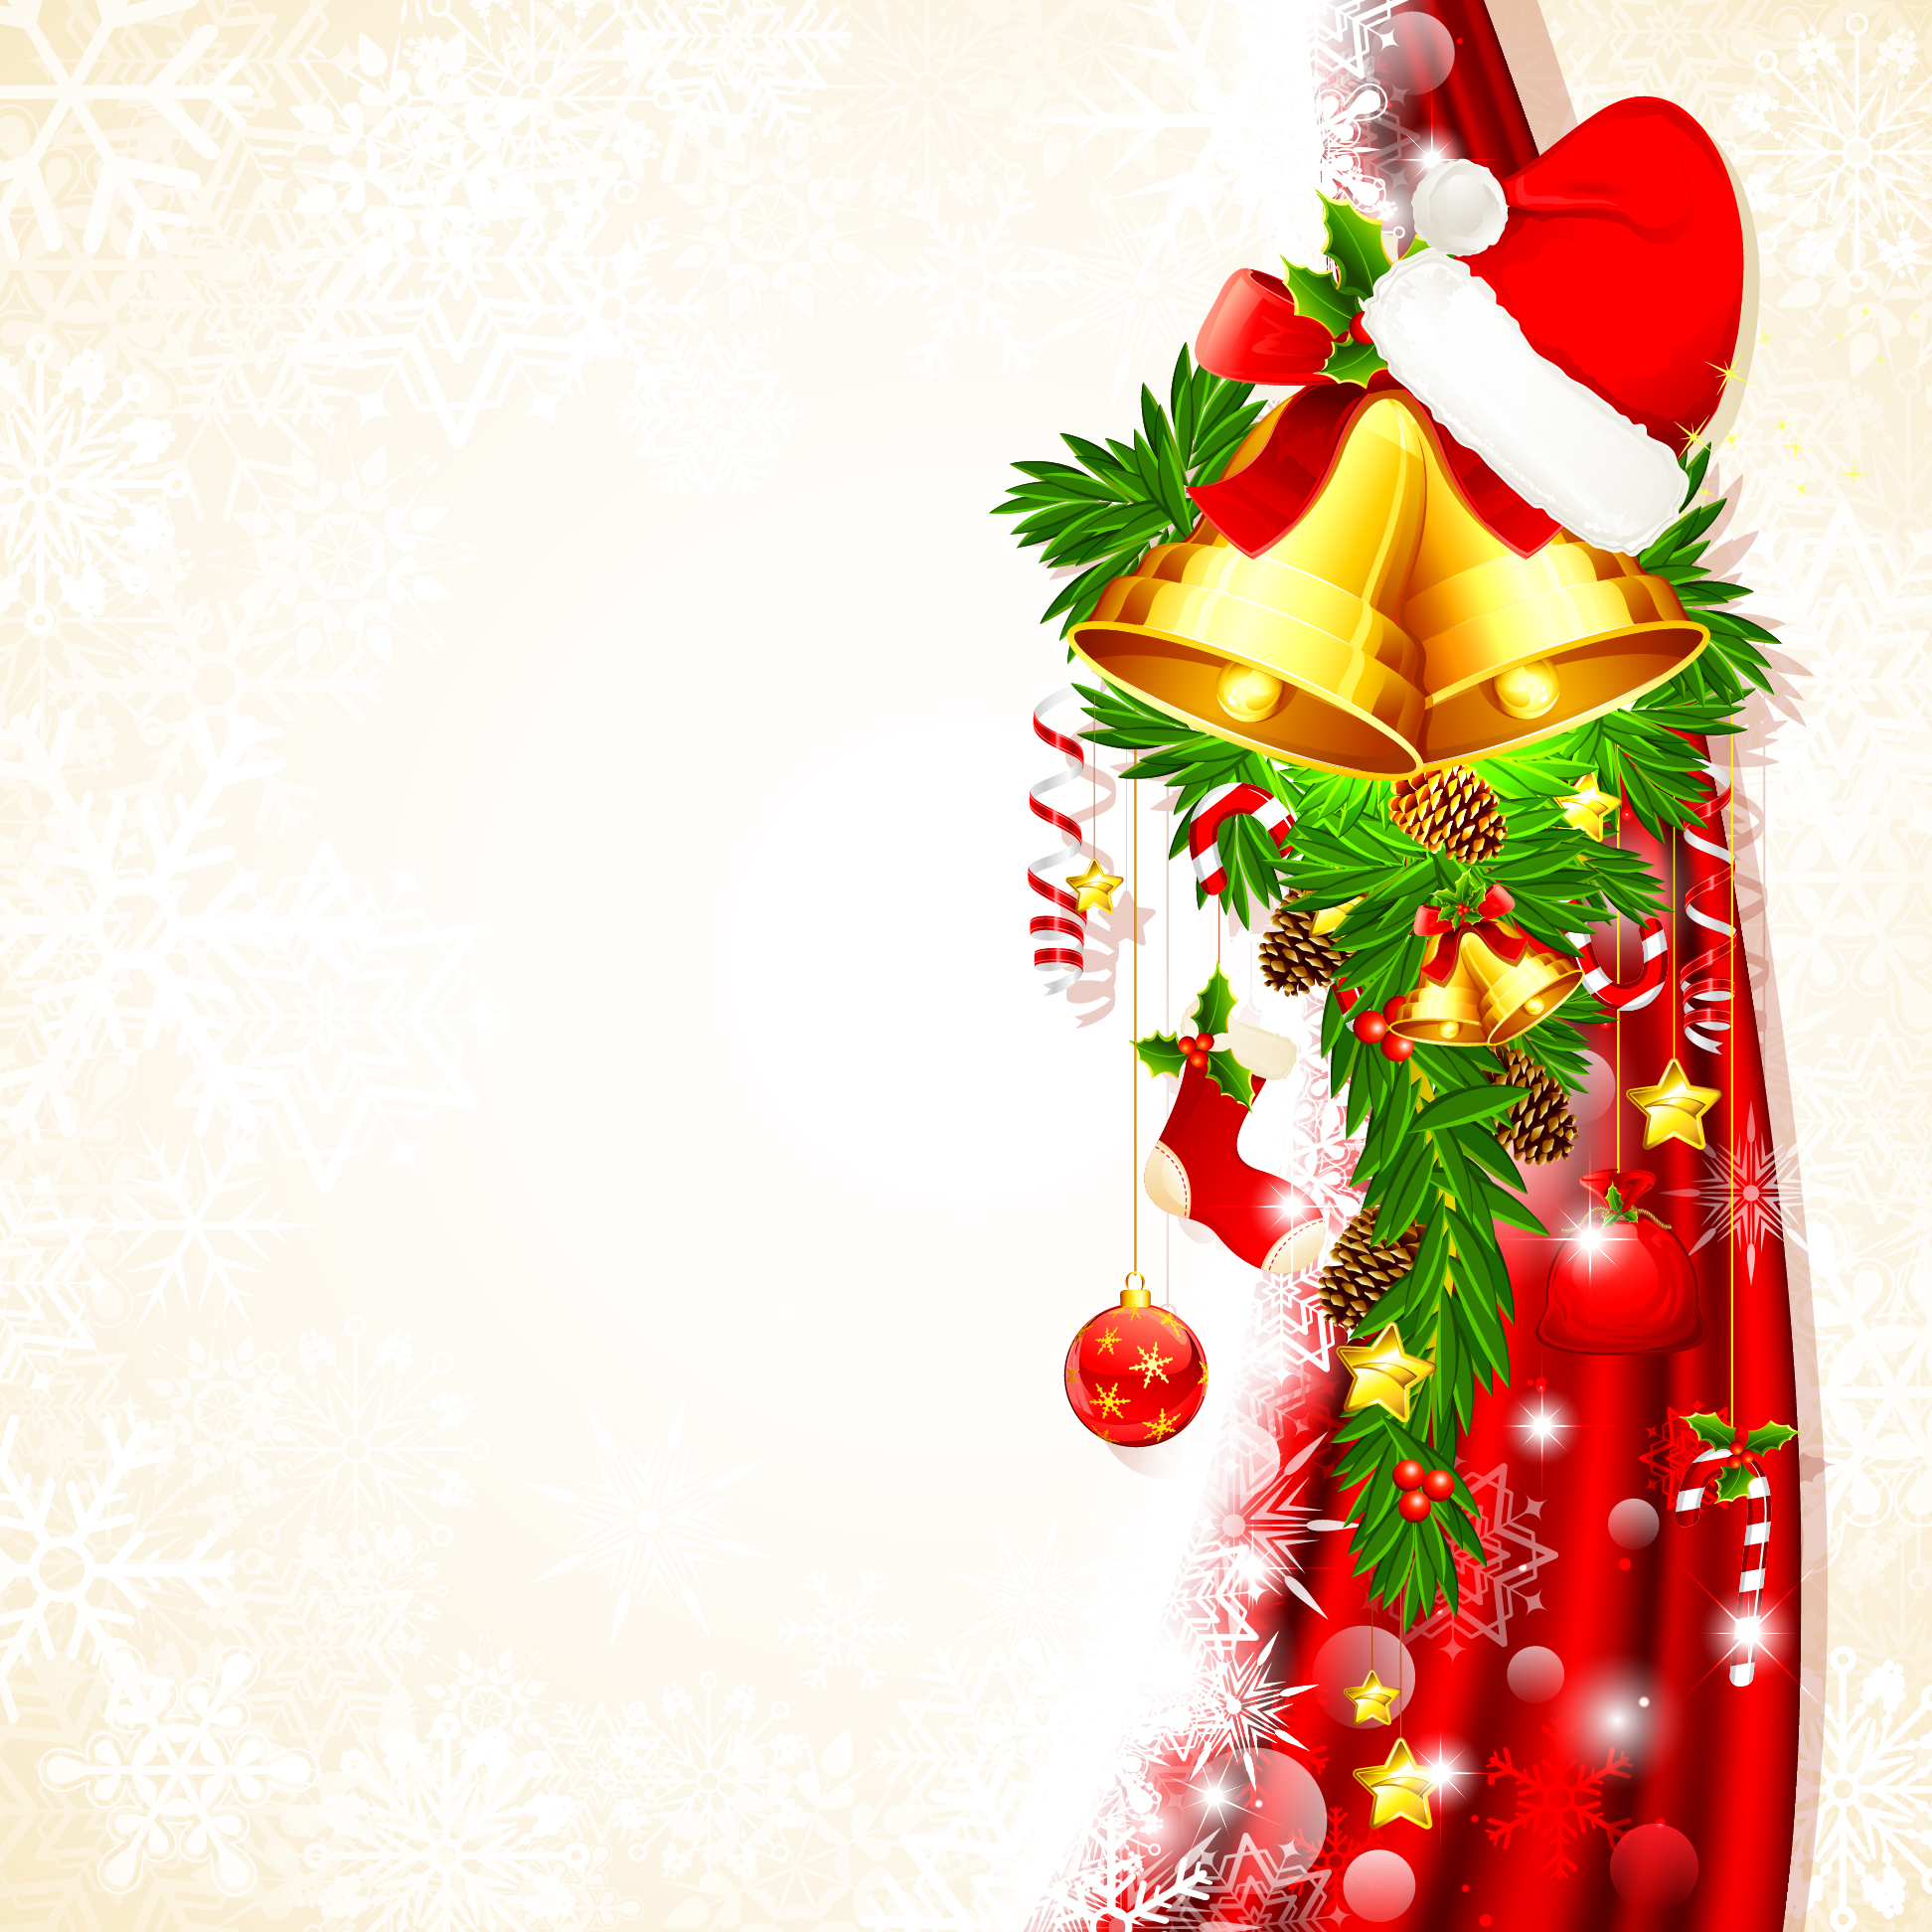 Free Free Christmas Background Clipart, Download Free Clip.